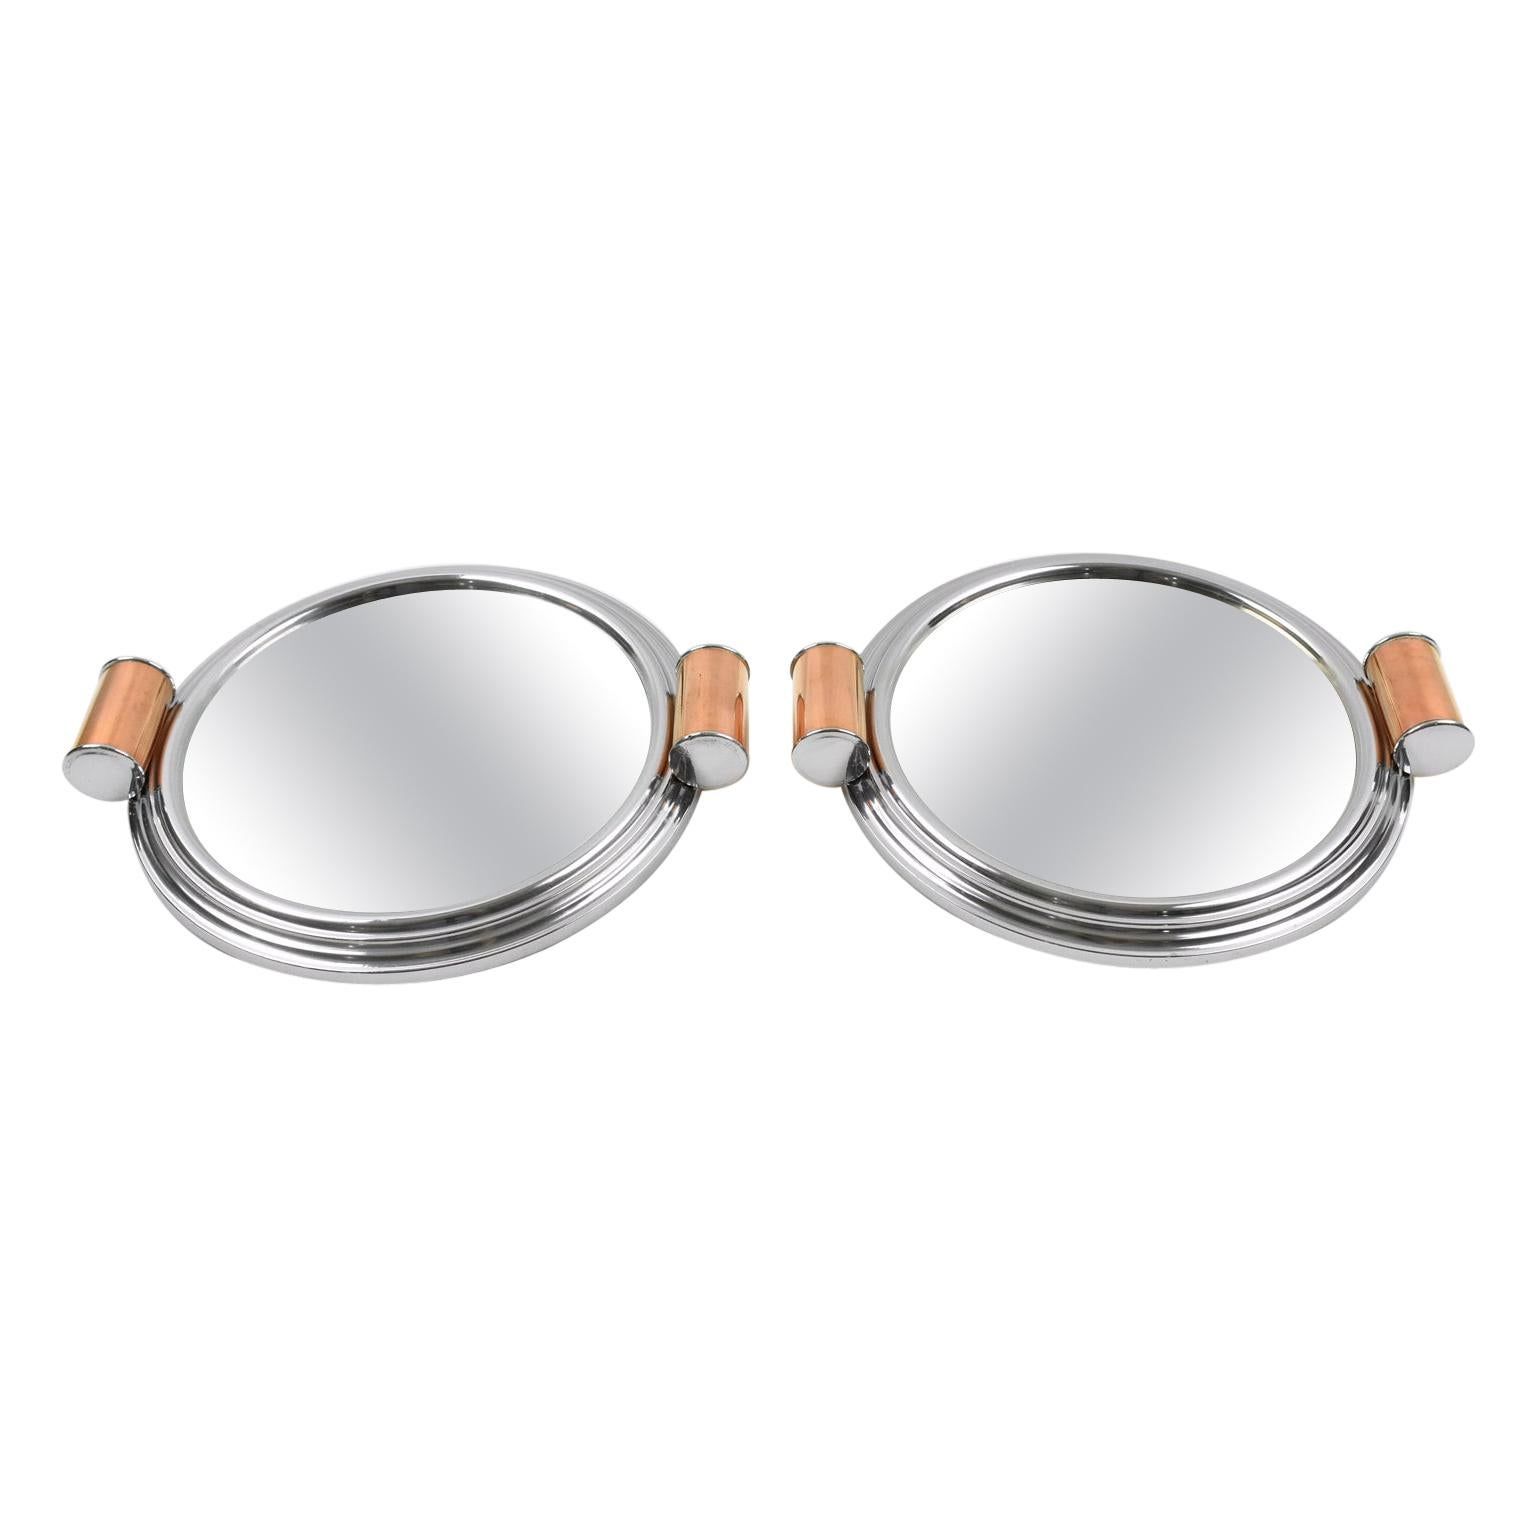 Art Deco Aluminum, Mirror and Copper Barware Tray, a pair